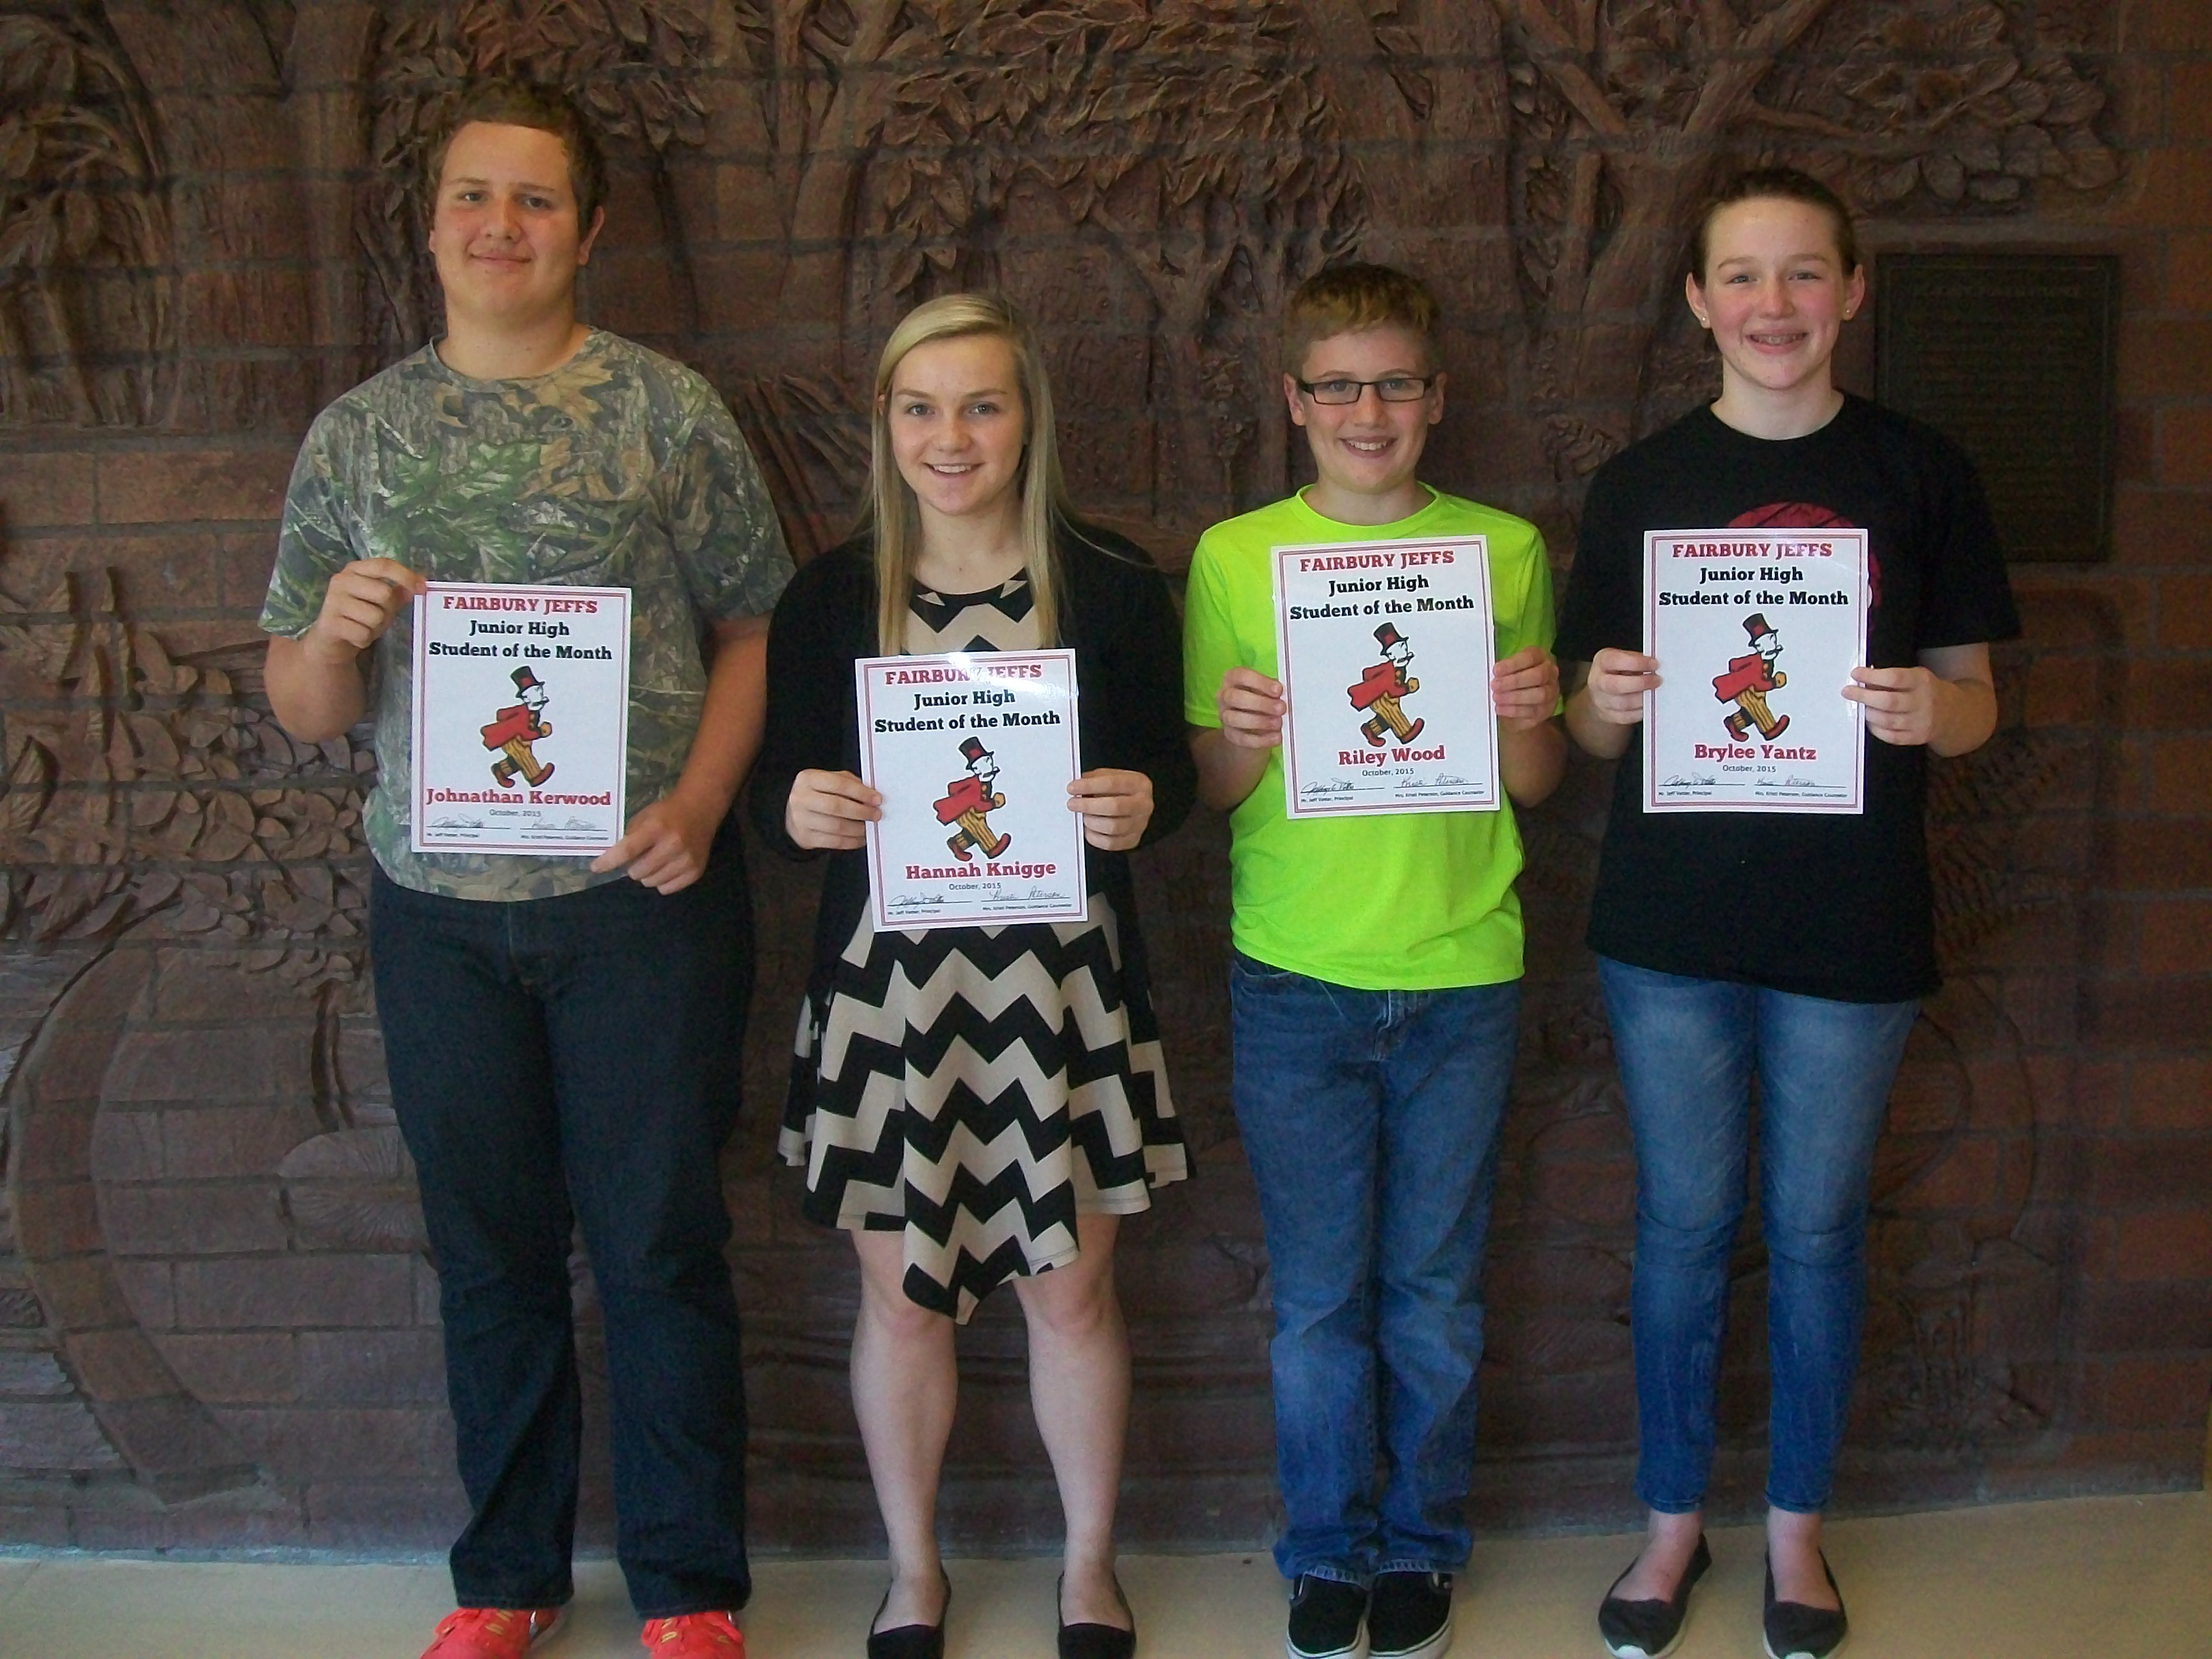 Junior High Students Of The Month